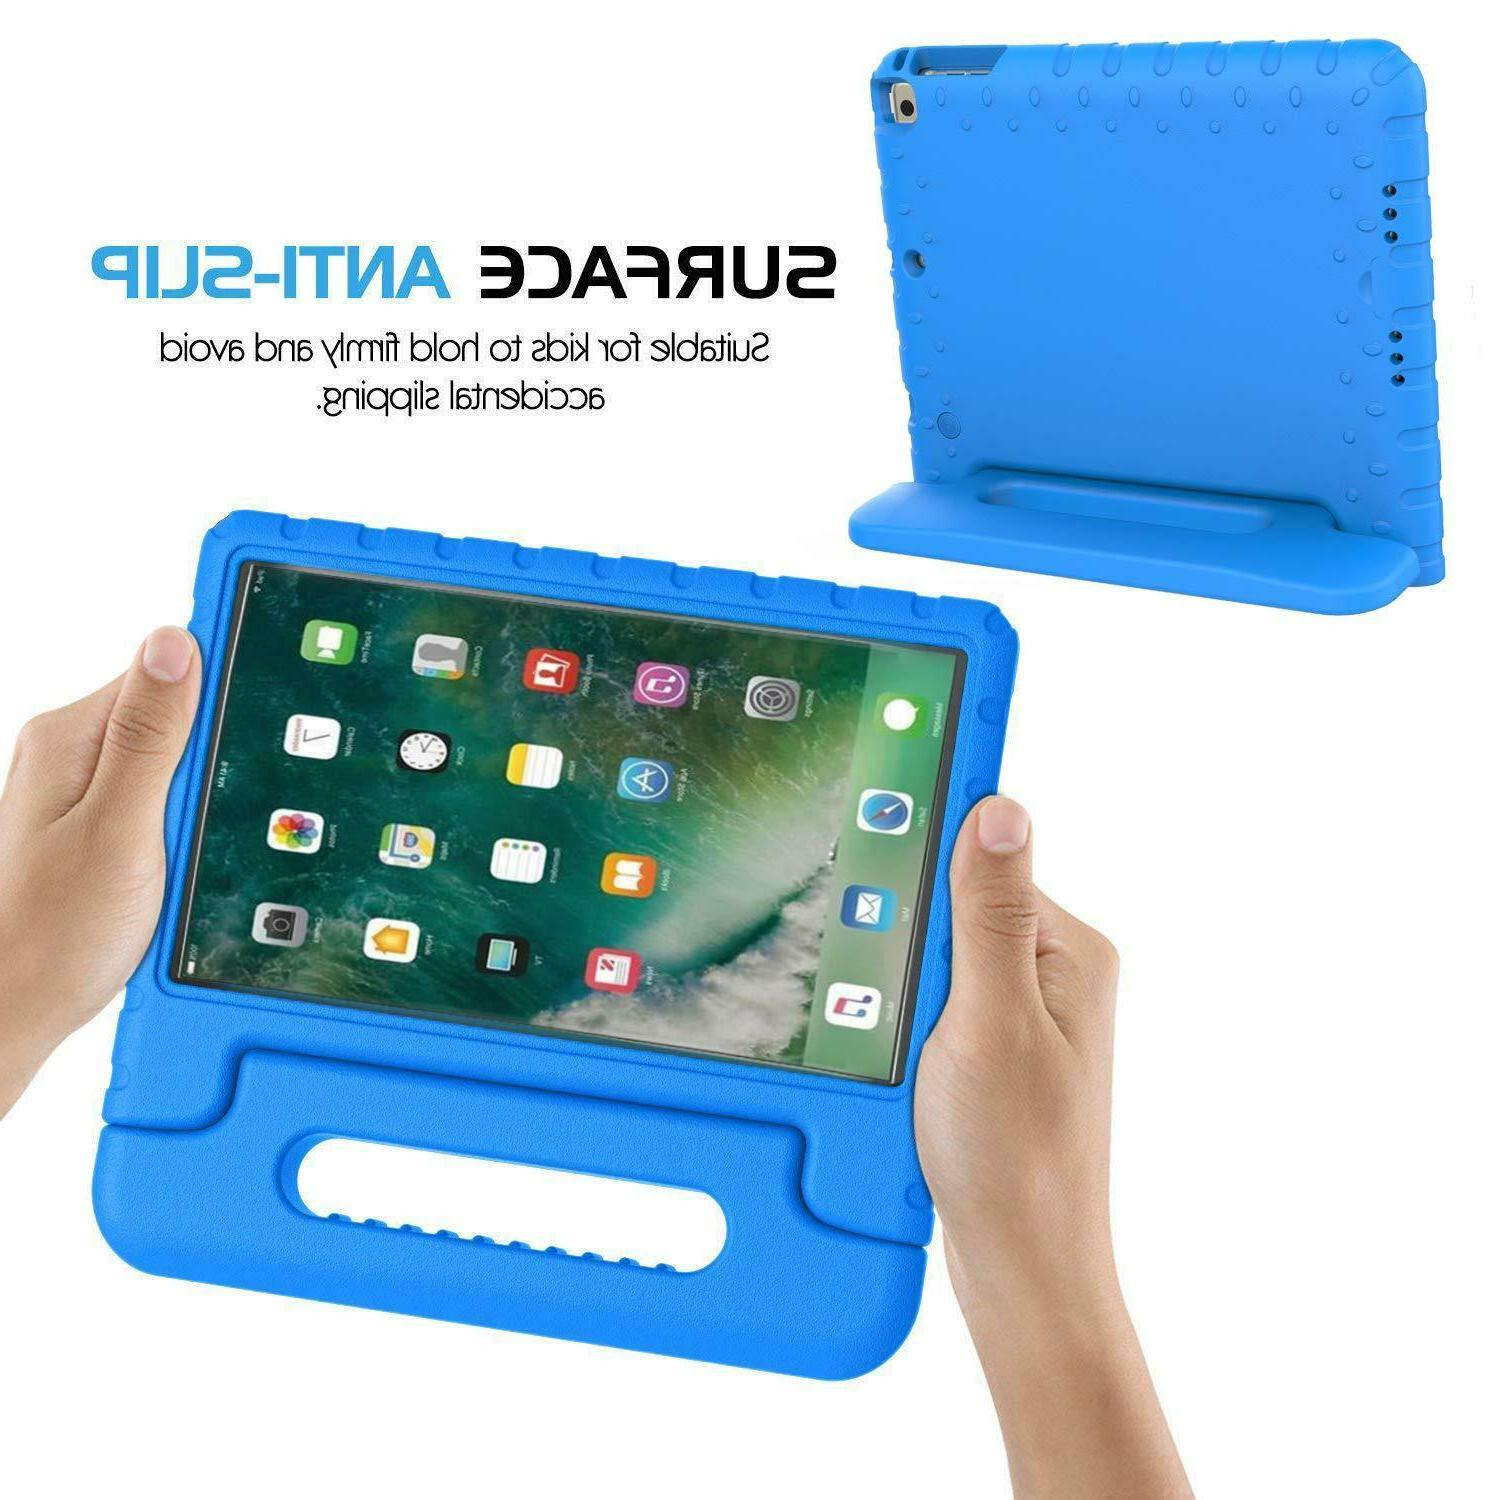 Kids Shockproof Foam Case Handle Cover Stand for iPad 2 3 5